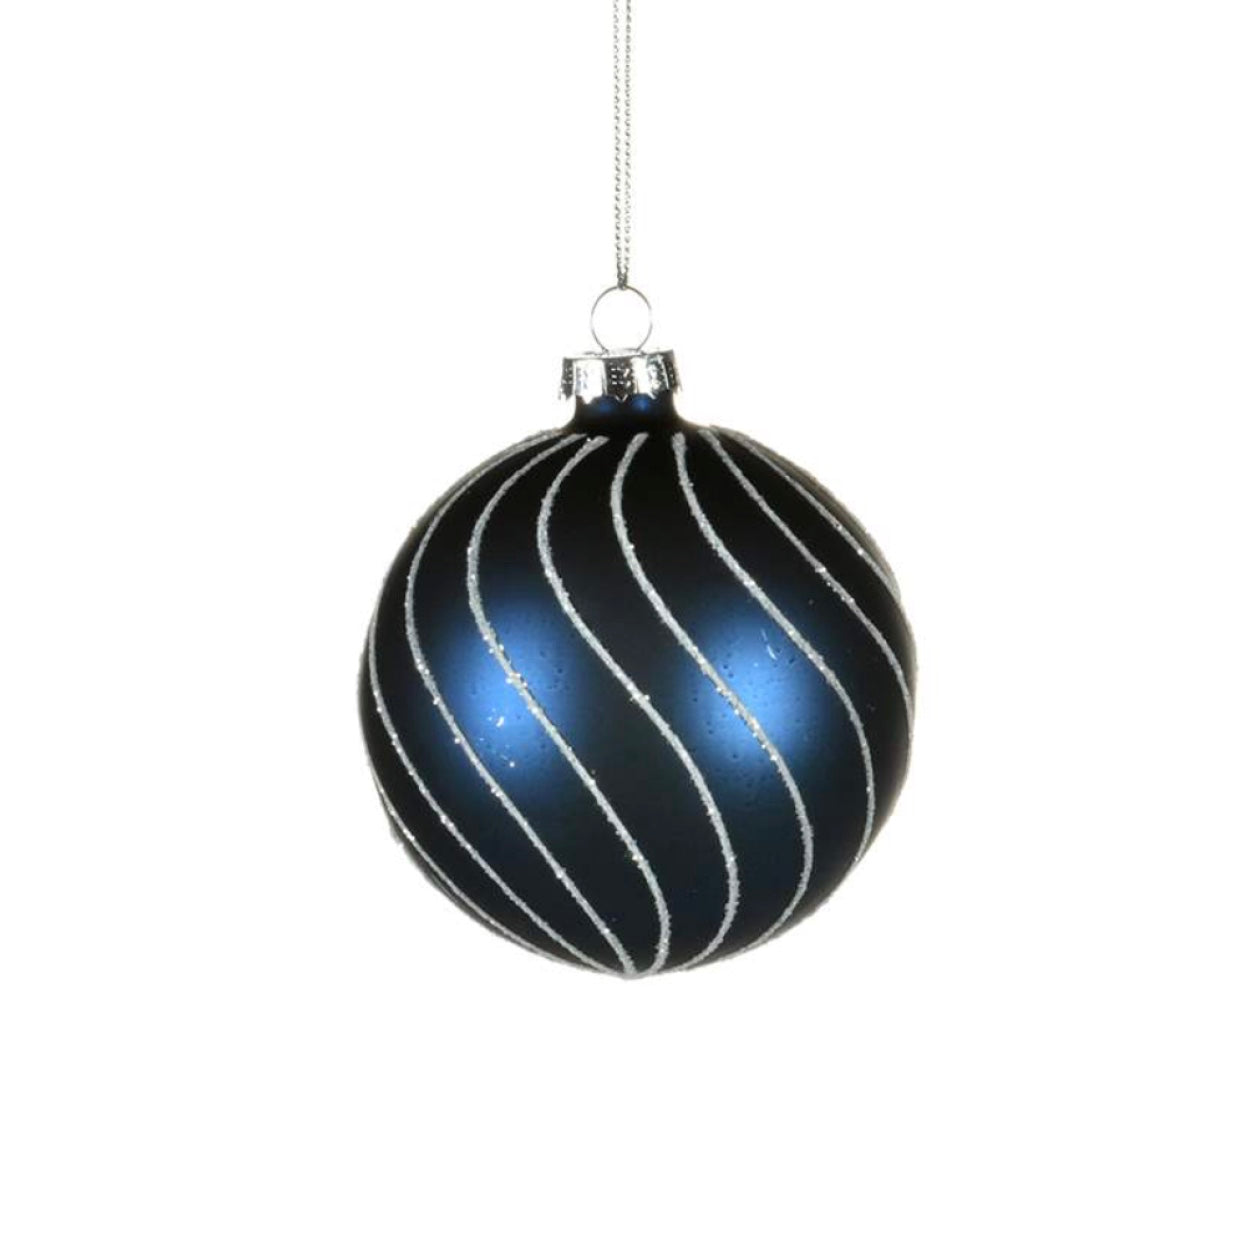 Navy Glass Ornament with Silver Glitter Swirls - Ball | Putti Christmas Canada